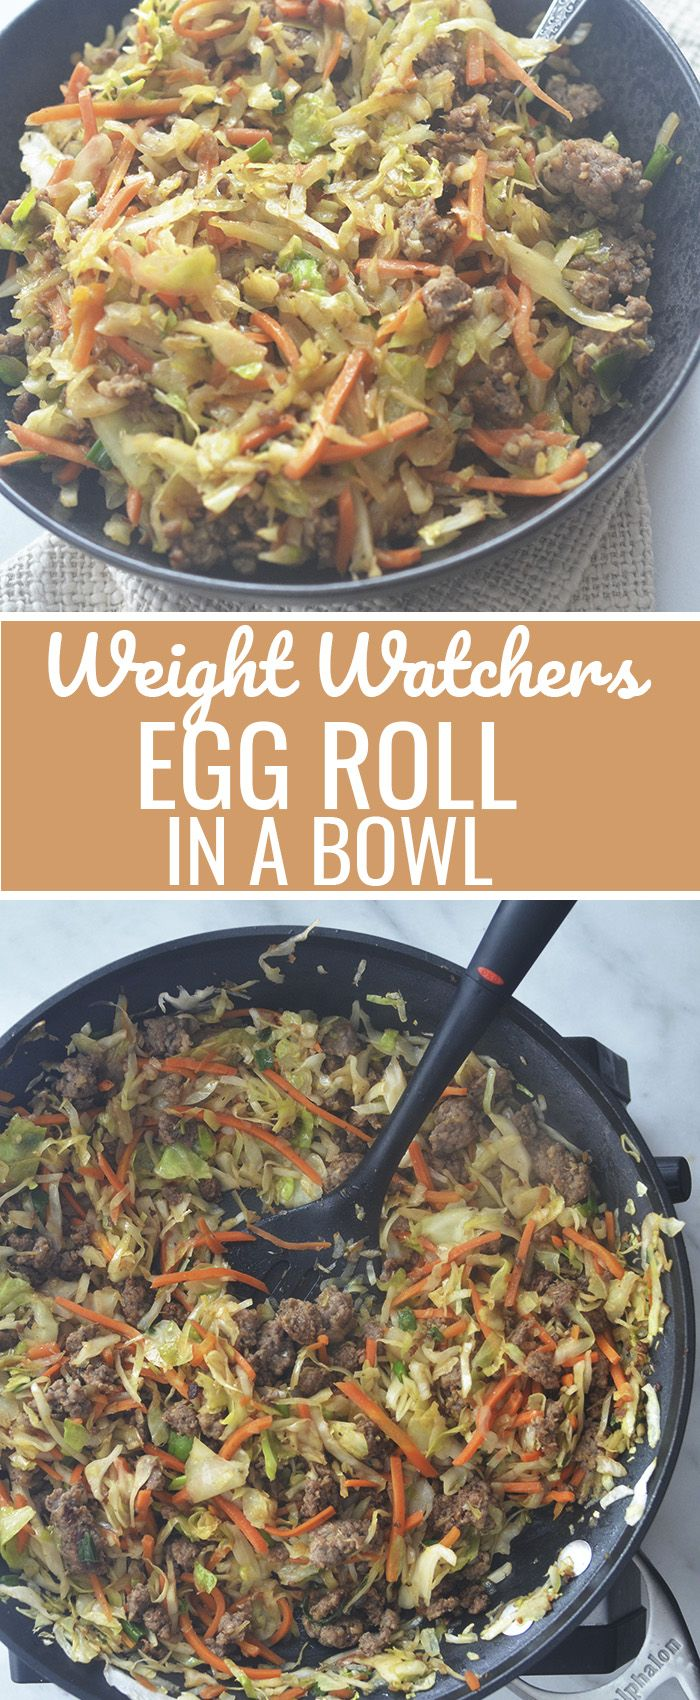 Weight Watchers - Egg Roll in a Bowl Recipe Diaries #lowcarb #lowcarbdiet #weightwatchers #chinesefood